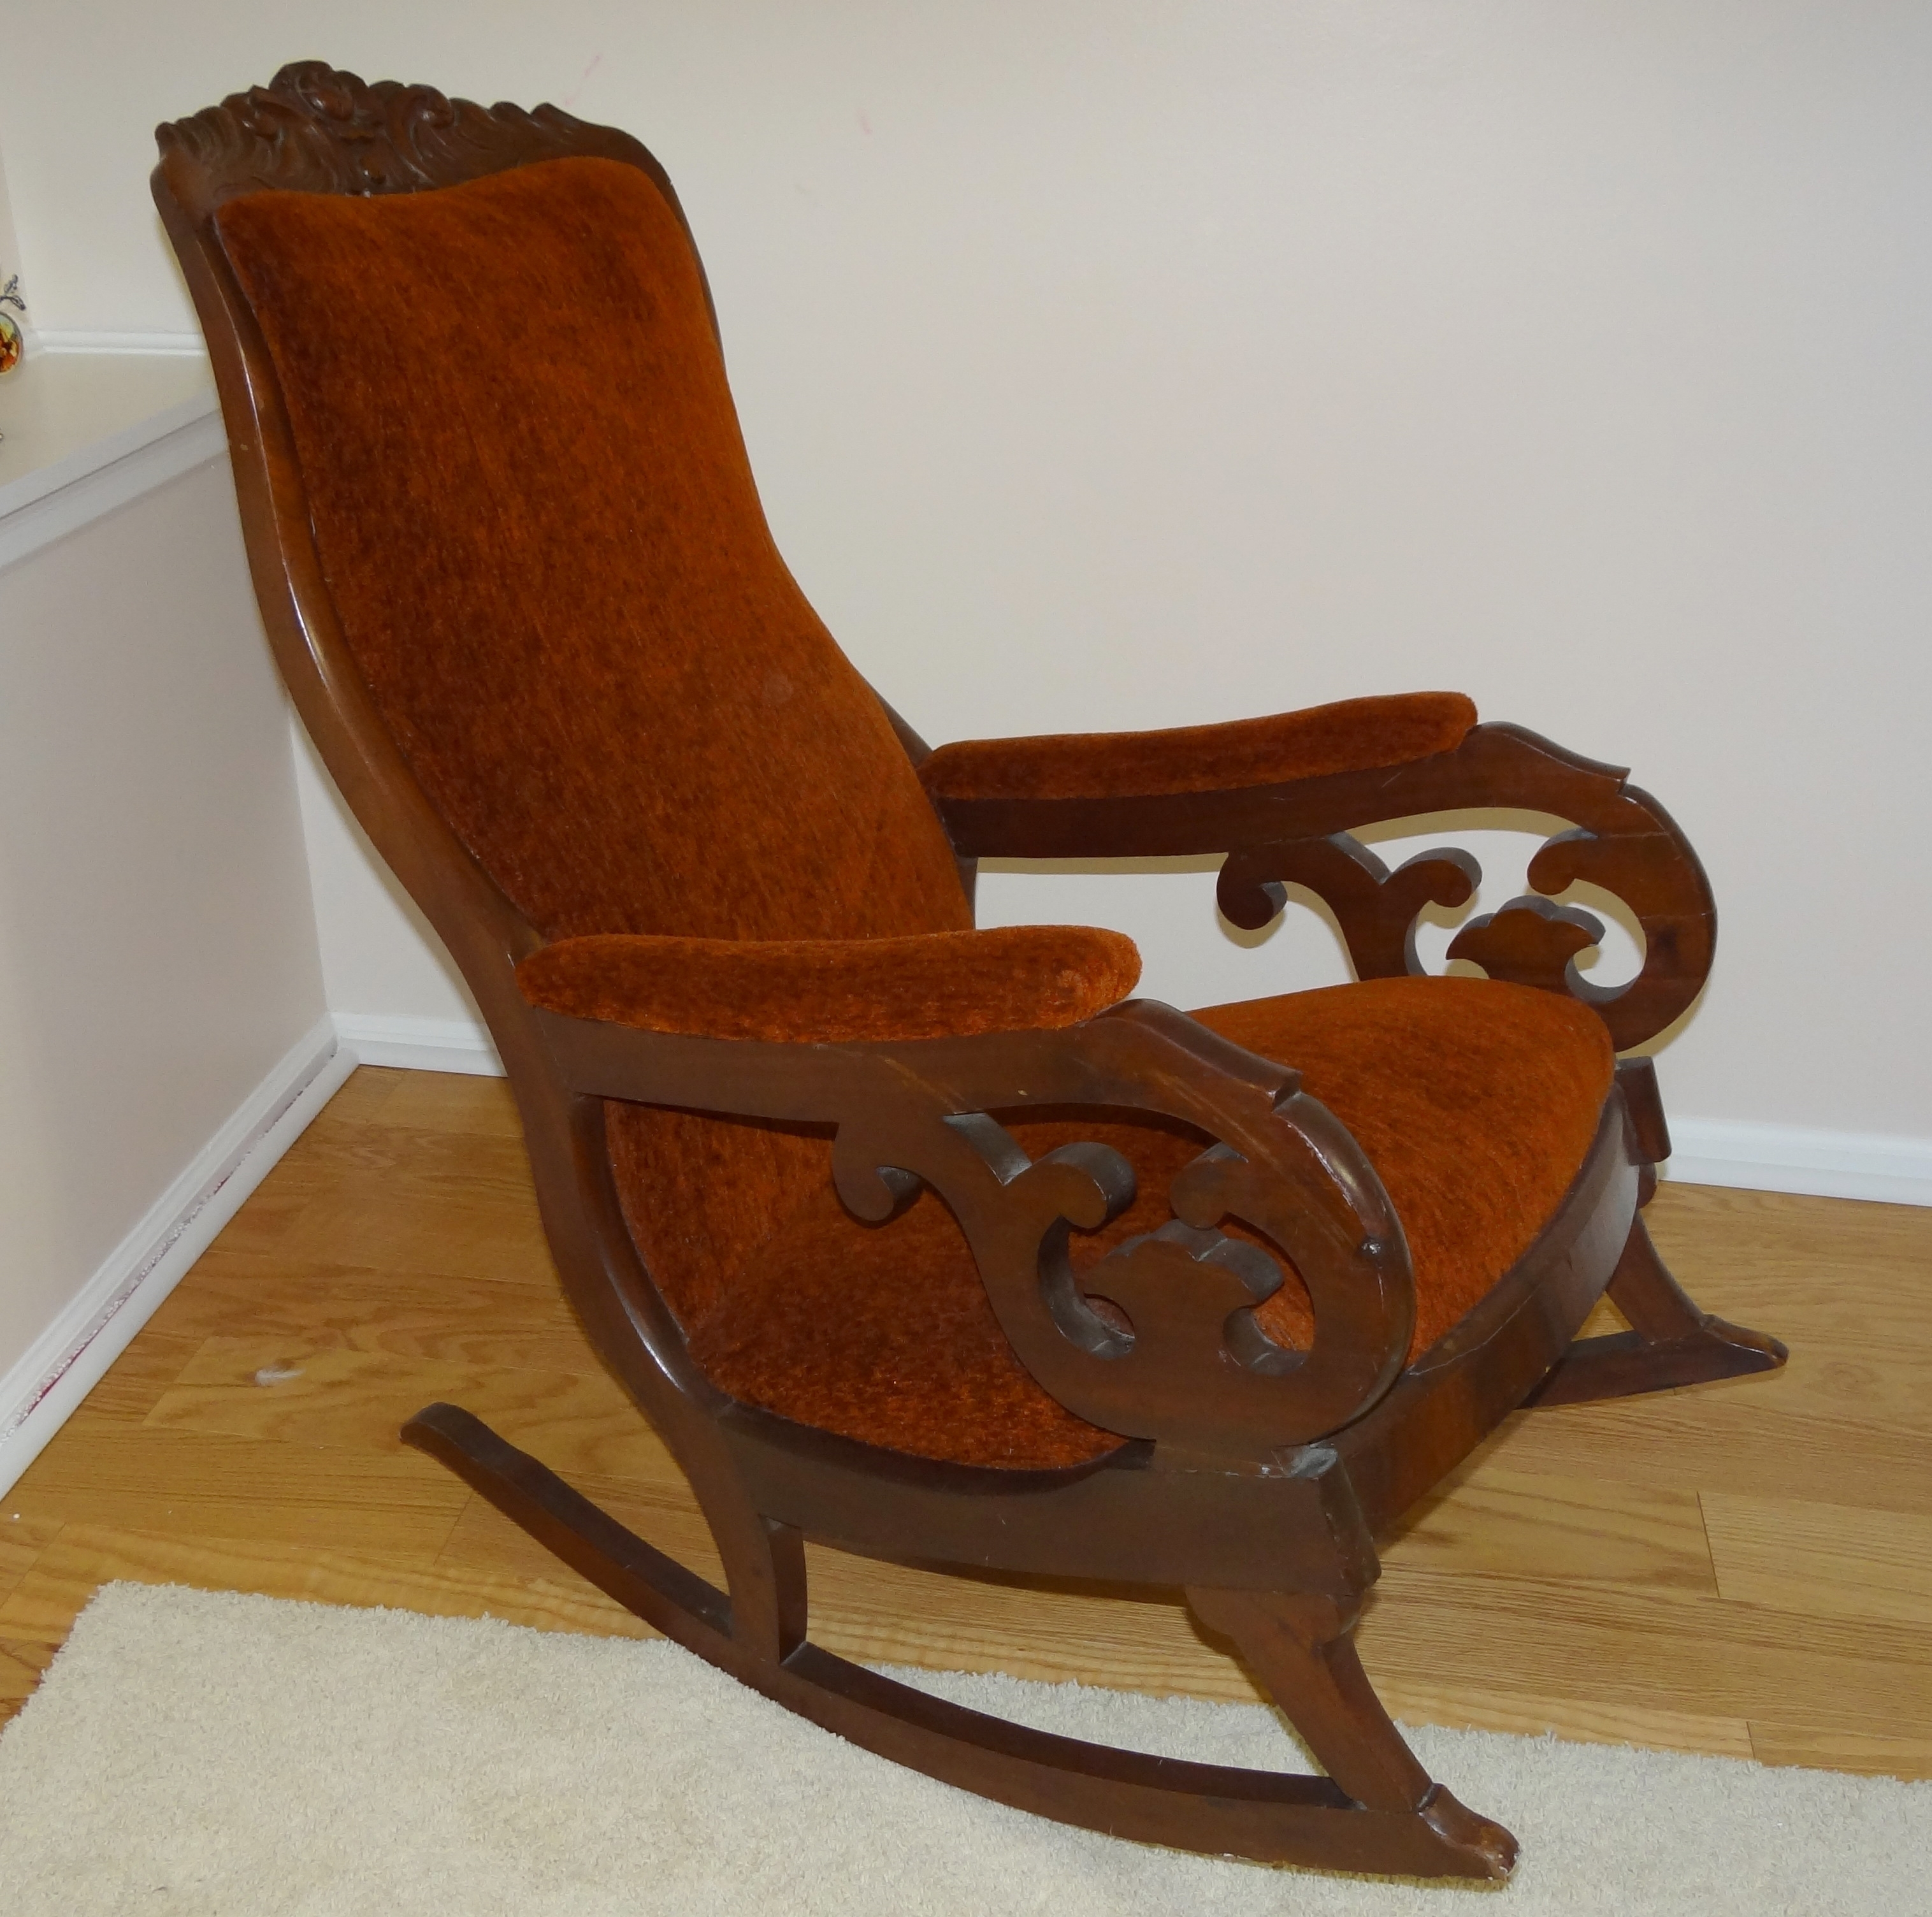 Newest Rocking Chairs With Springs In Beautiful Wooden Rocking Chairs Prices 11 Furniture Upholstered (Gallery 16 of 20)